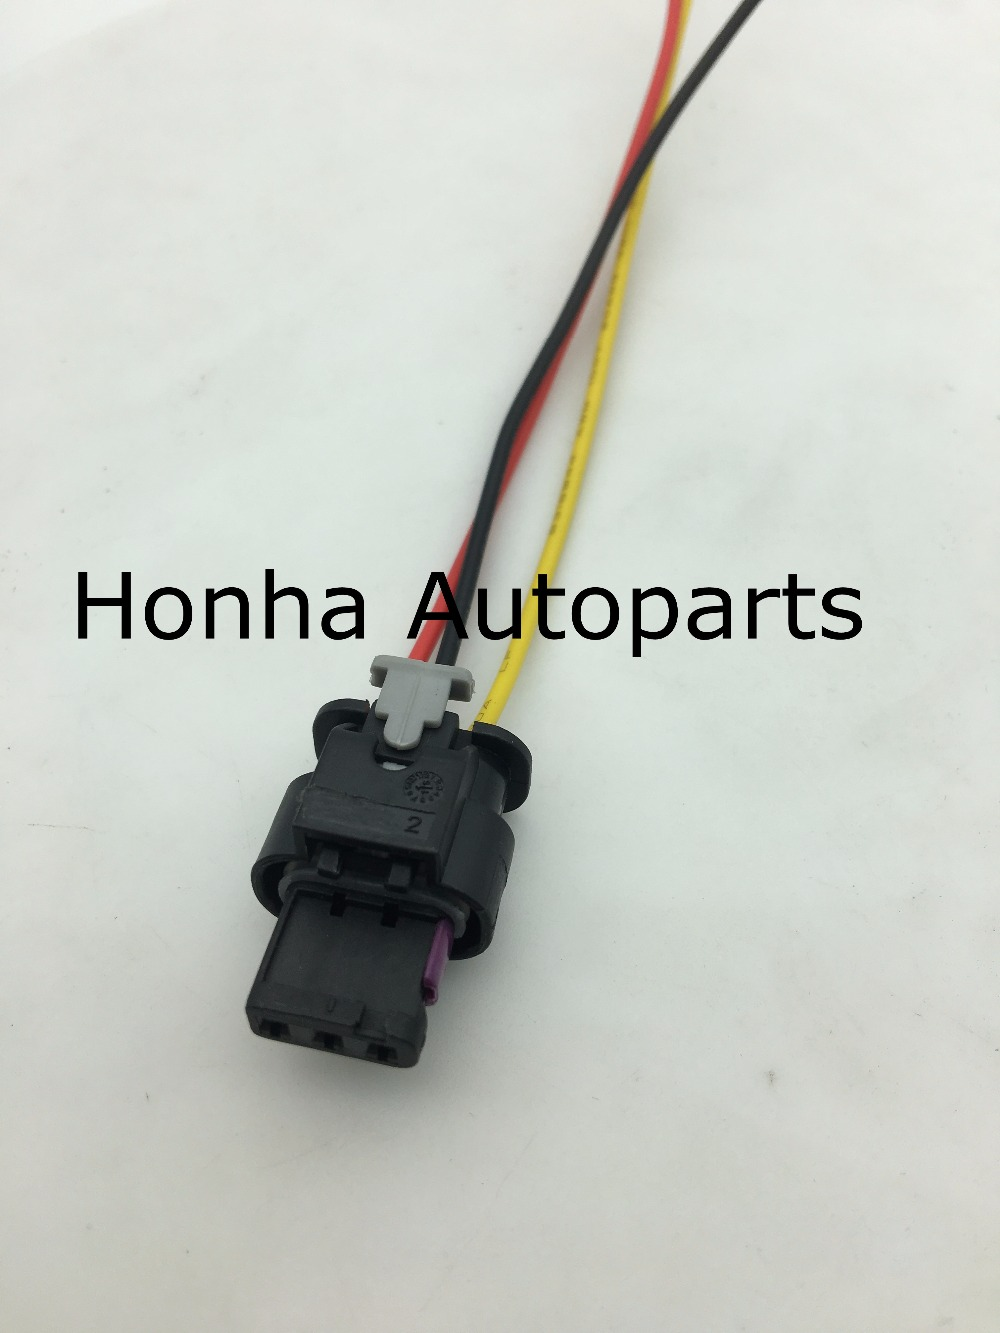 Flat Housing Connector Plug 3 pin Wiring Harness For VW Jetta ... on terminal block pin connector, tube pin connector, 10 pin connector, 6 pin molex connector, power supply pin connector, obd 16 pin connector, 14 pin connector, spring pin connector, ecu pin connector, pcb pin connector, seal pin connector, speaker pin connector, plug pin connector,